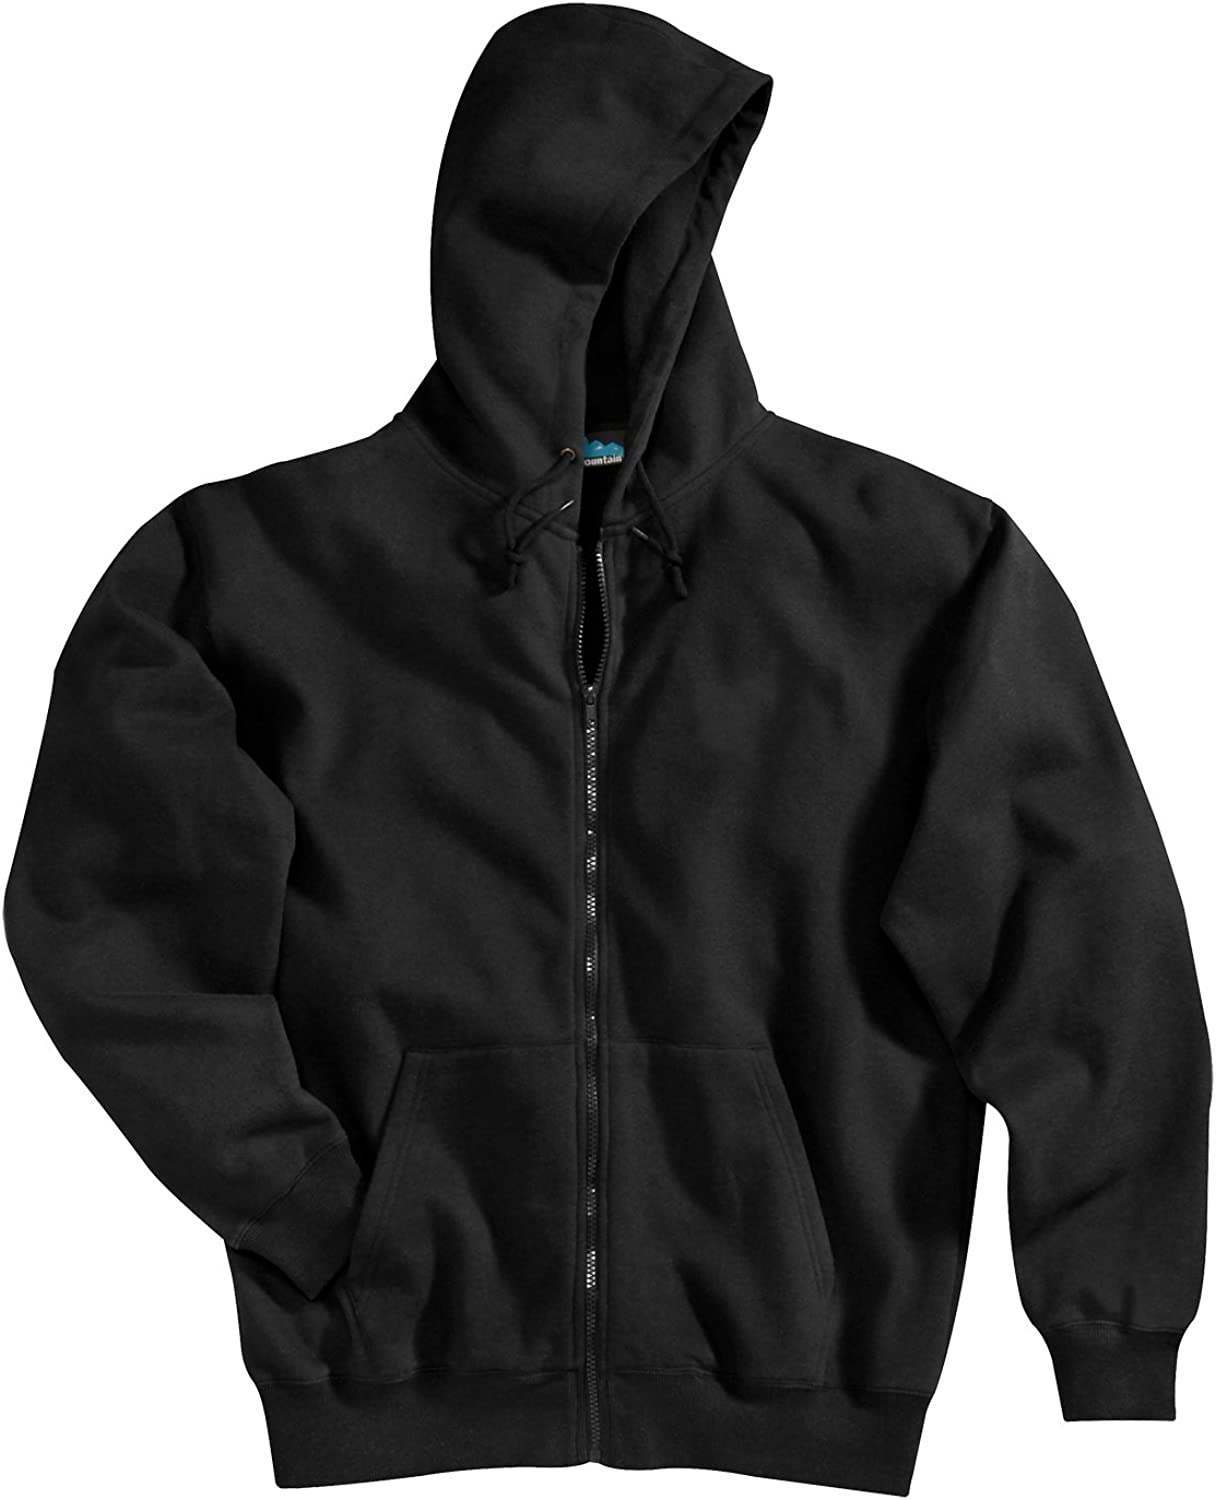 Tri-mountain Cotton poly Kansas City Mall sueded finish zip hooded sweatshir full Financial sales sale